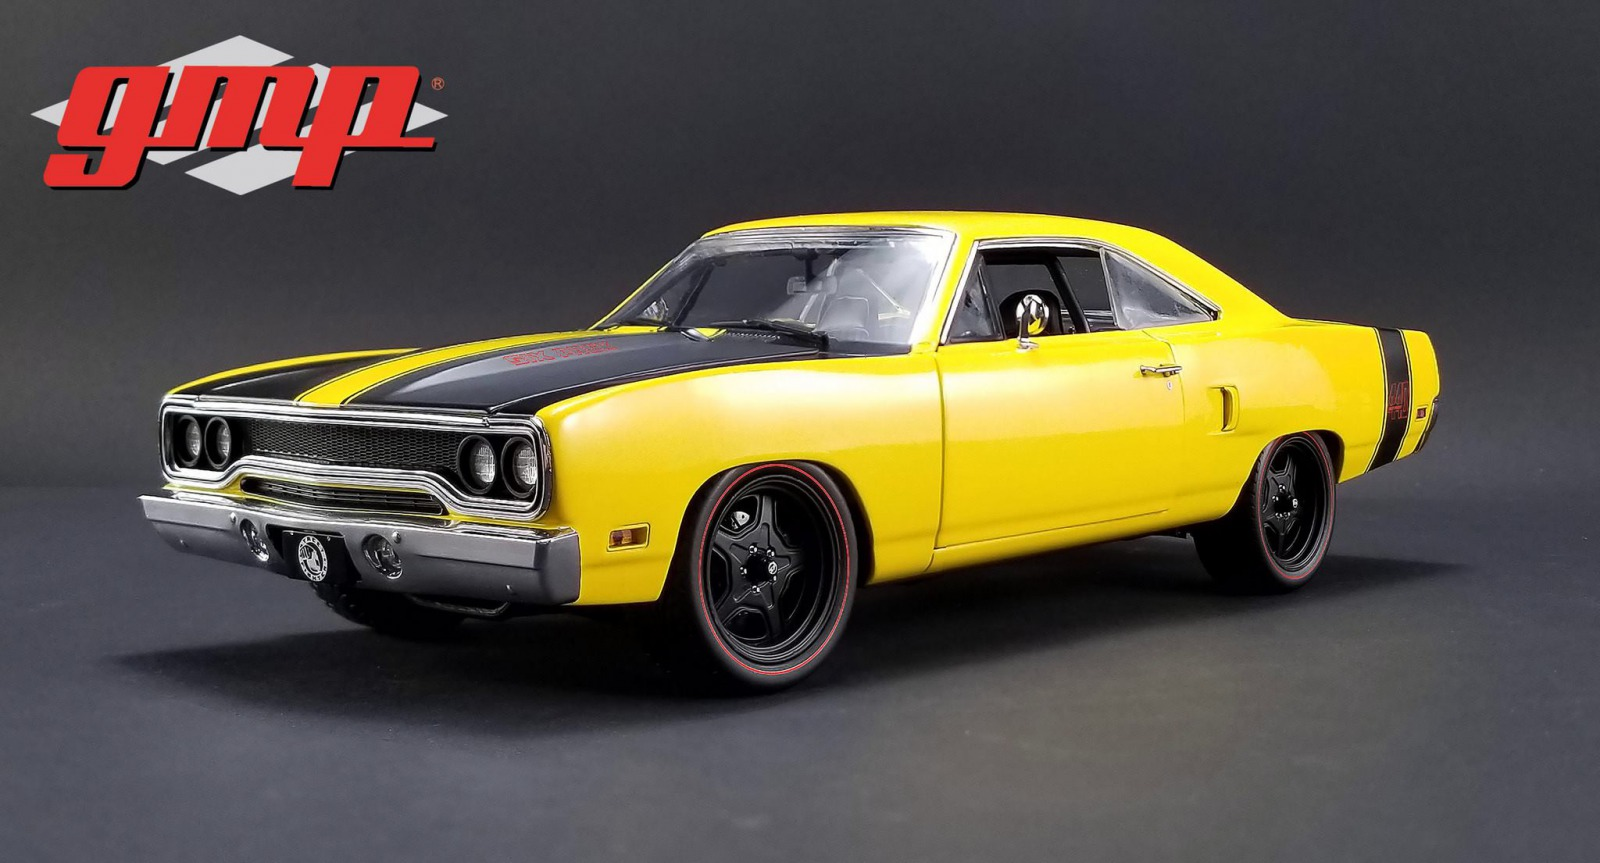 GMP 1:18 1970年モデル プリムス ロードランナー ストリート ファイター 440 6 Pack Attack イエロー1970 Street Fighter Plymouth Road Runner - 440 6 Pack Attack 1/18 by GMP USA